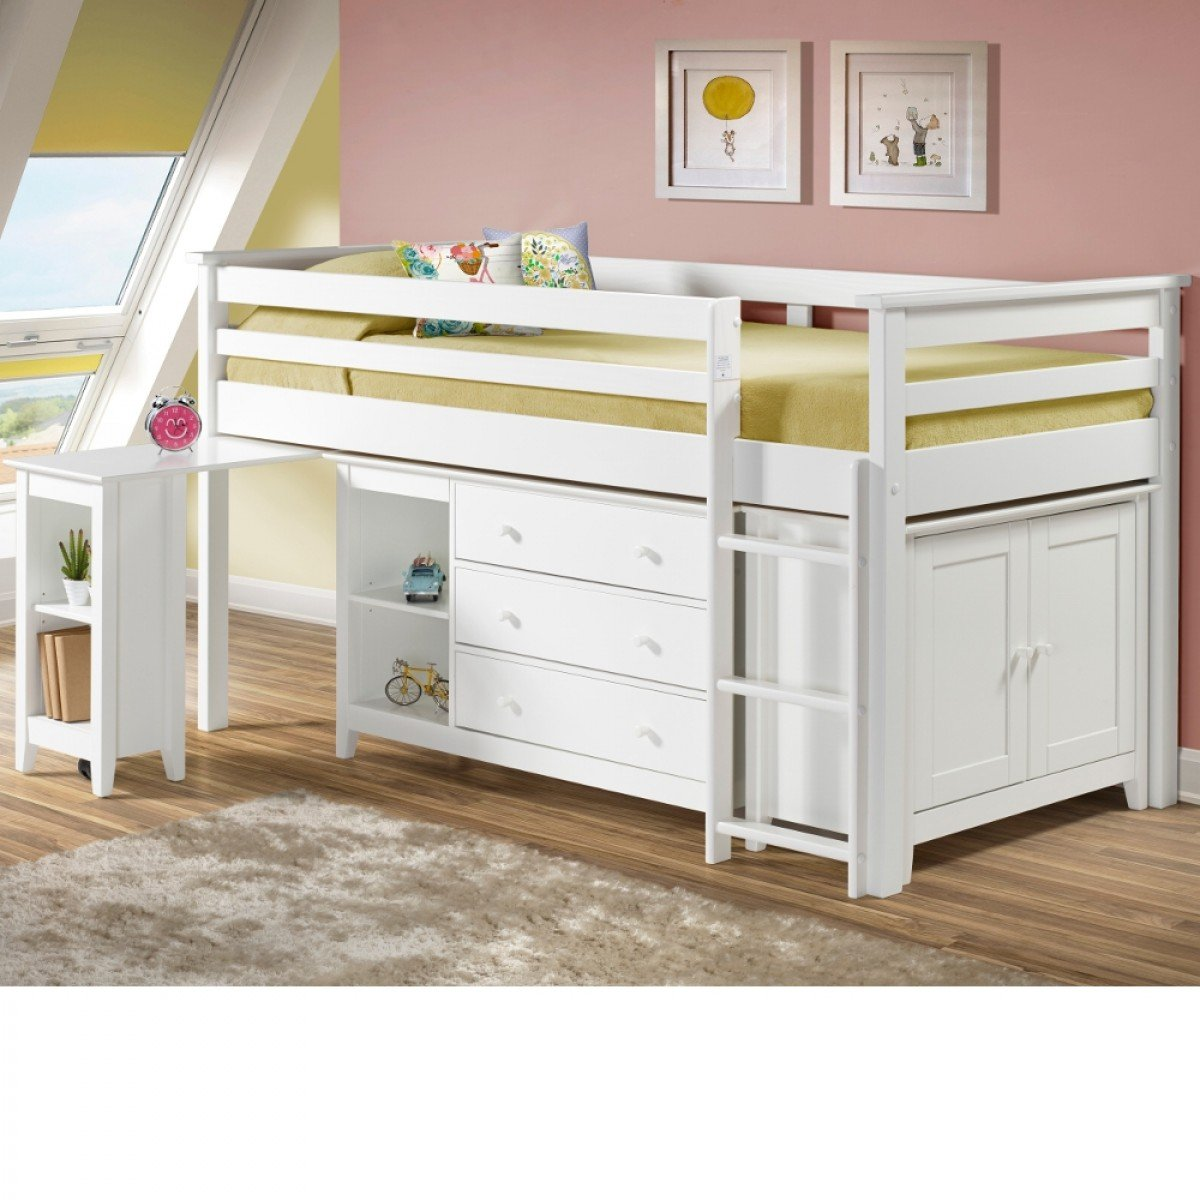 Cotswold White Finish Solid Pine Wooden Kids Mid Sleeper Sleep Station Desk Cabin Storage Bed